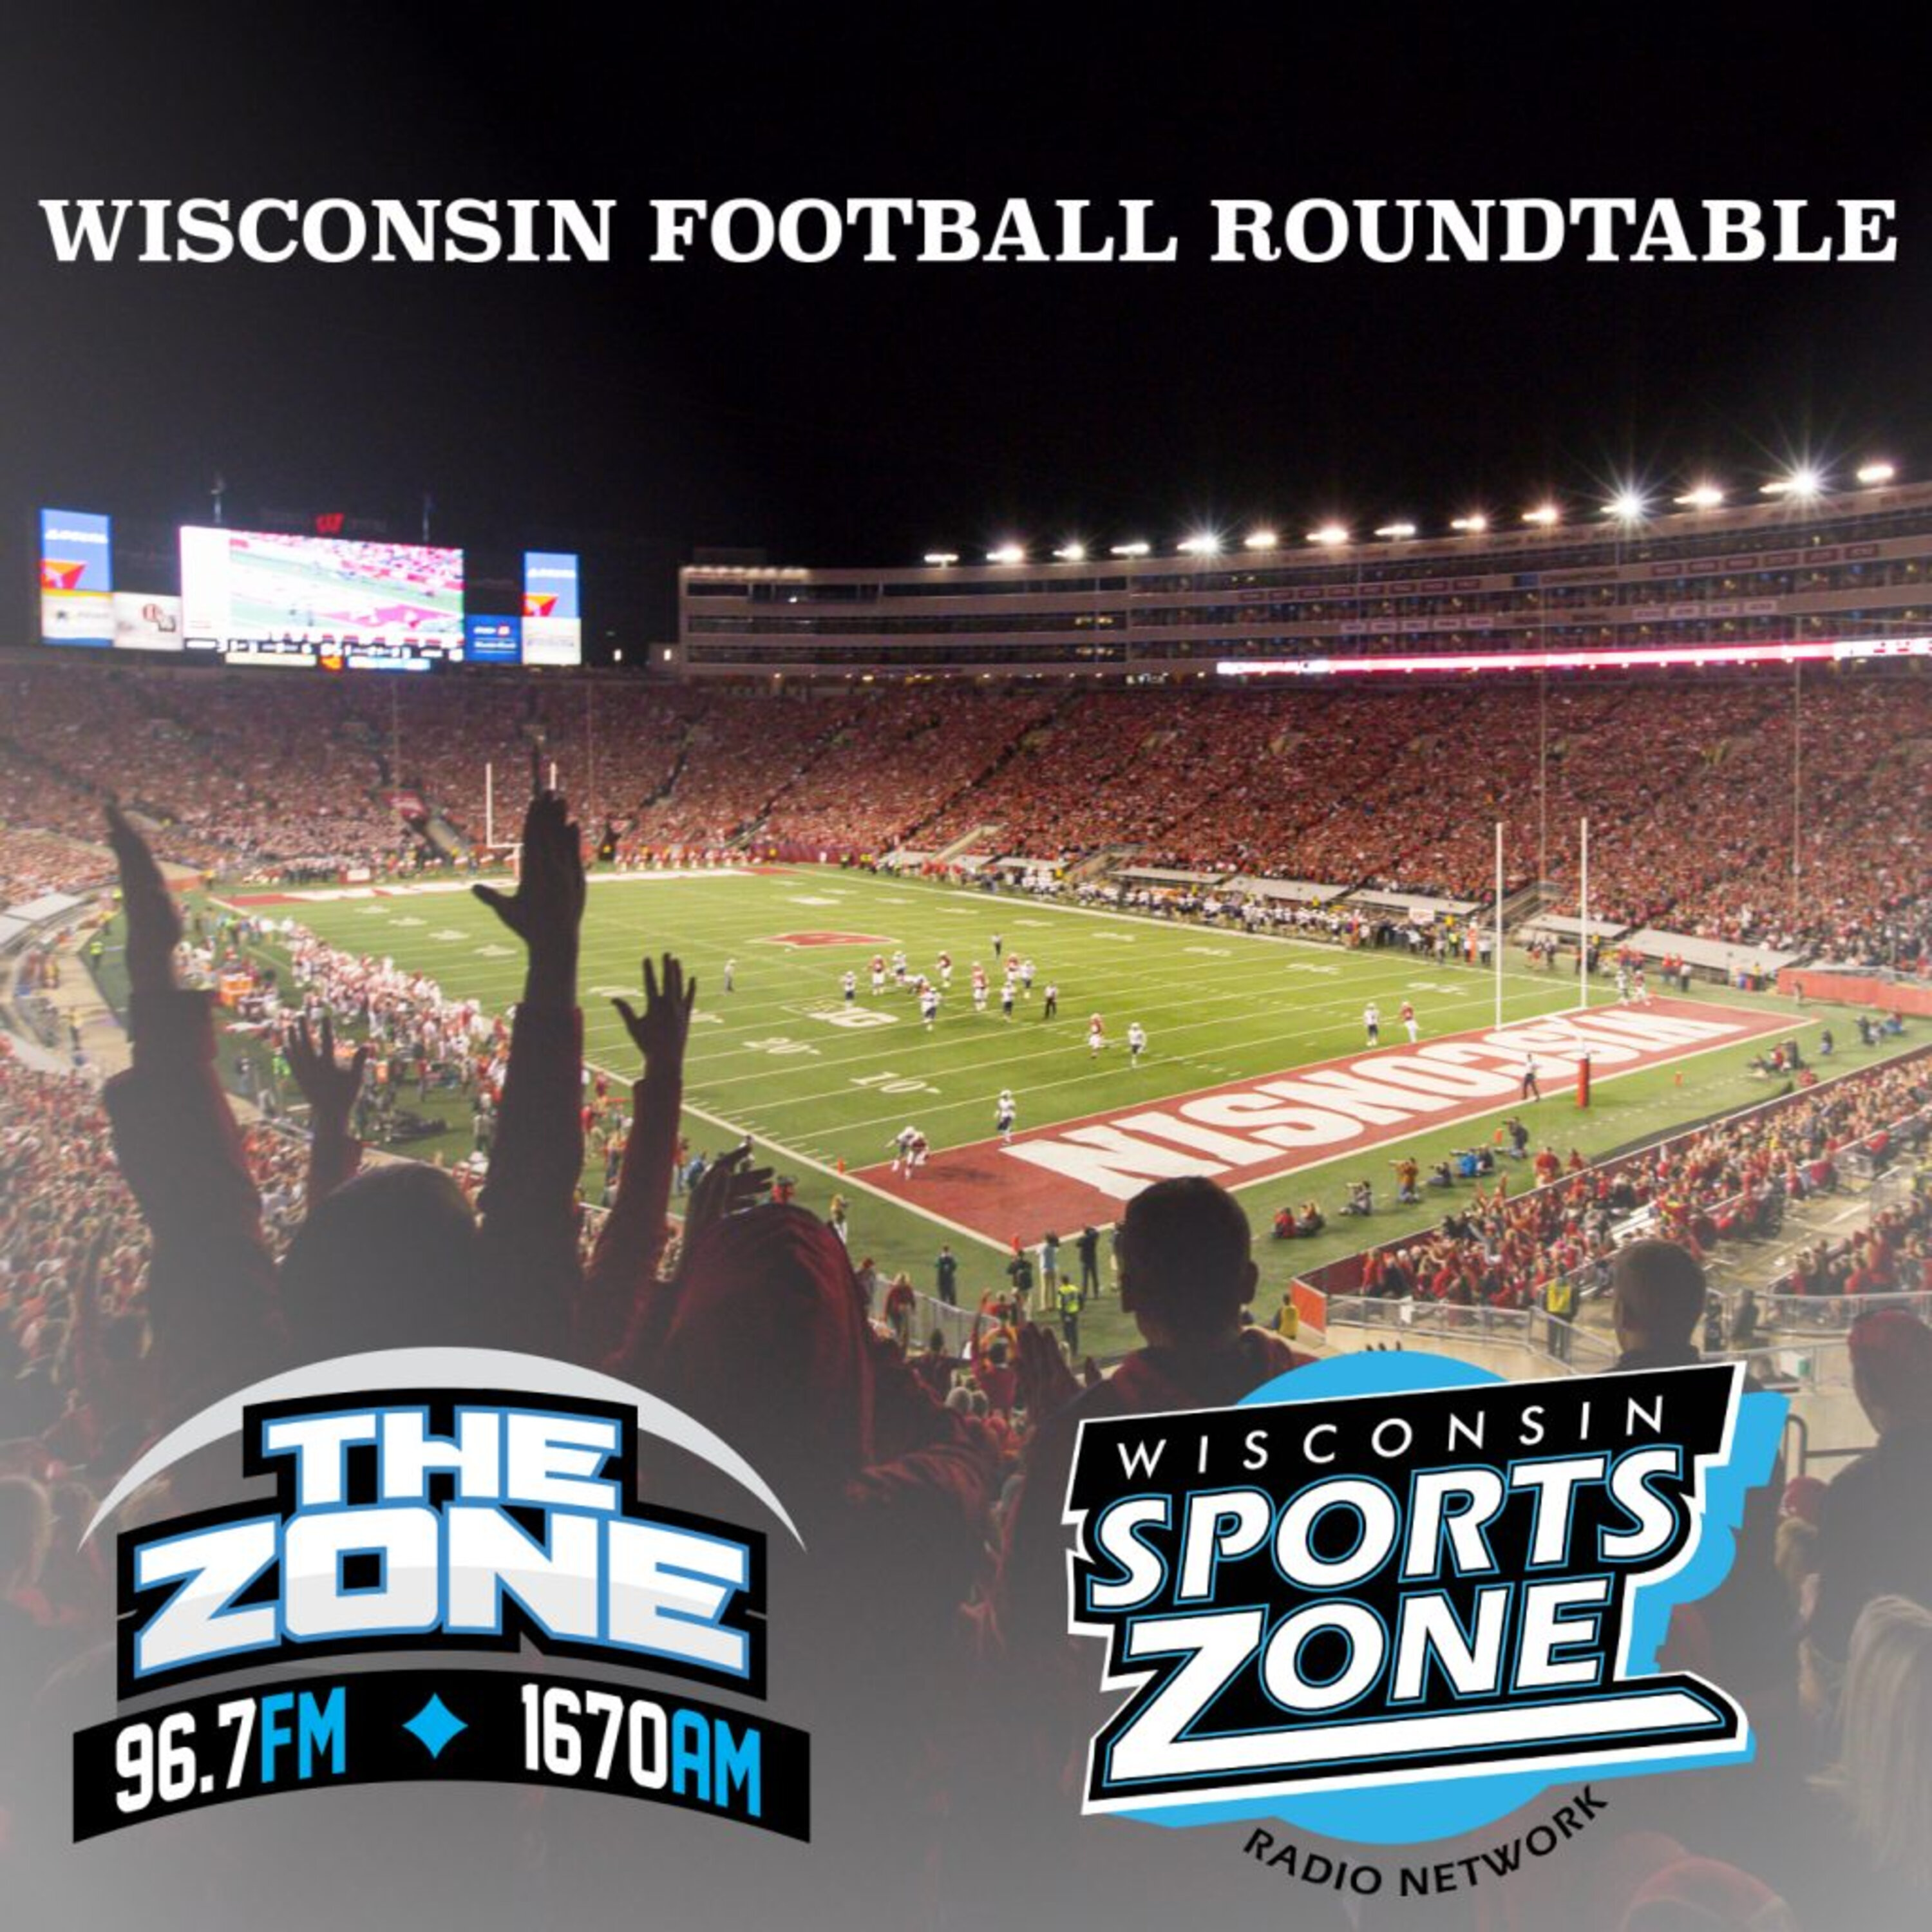 Wisconsin Football Roundtable: Aug. 29, 2019